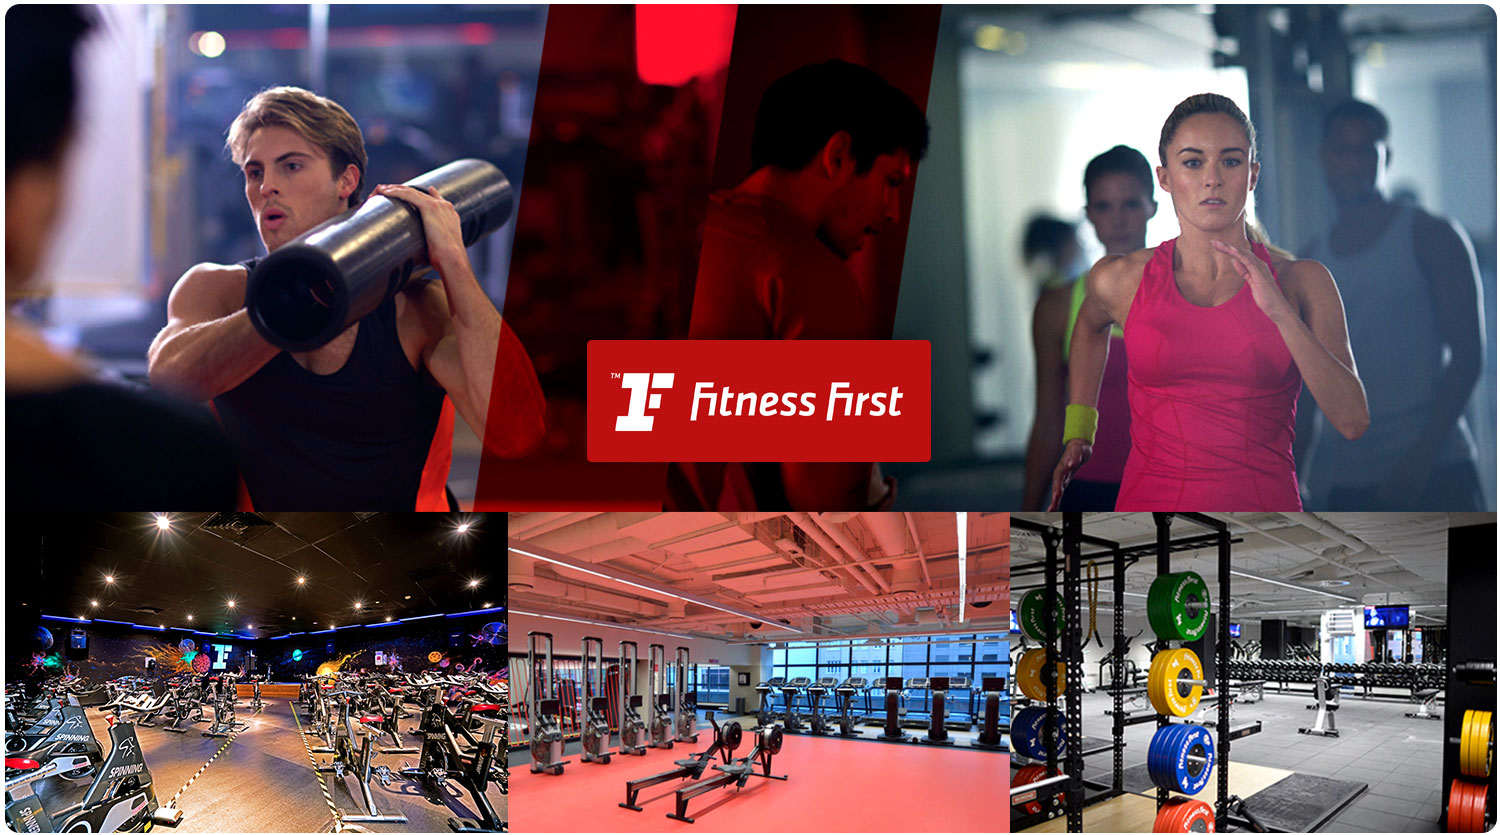 Start your Fitness Journey with Fitness First with only $14.95 for 14 days at Fitness First Sylvania NSW. Experience our first class gym and freestyle classes inc. Zumba, Pilates, Yoga, Boxing, Les Mills and more. Take the first step with Fitness First Sylvania NSW.